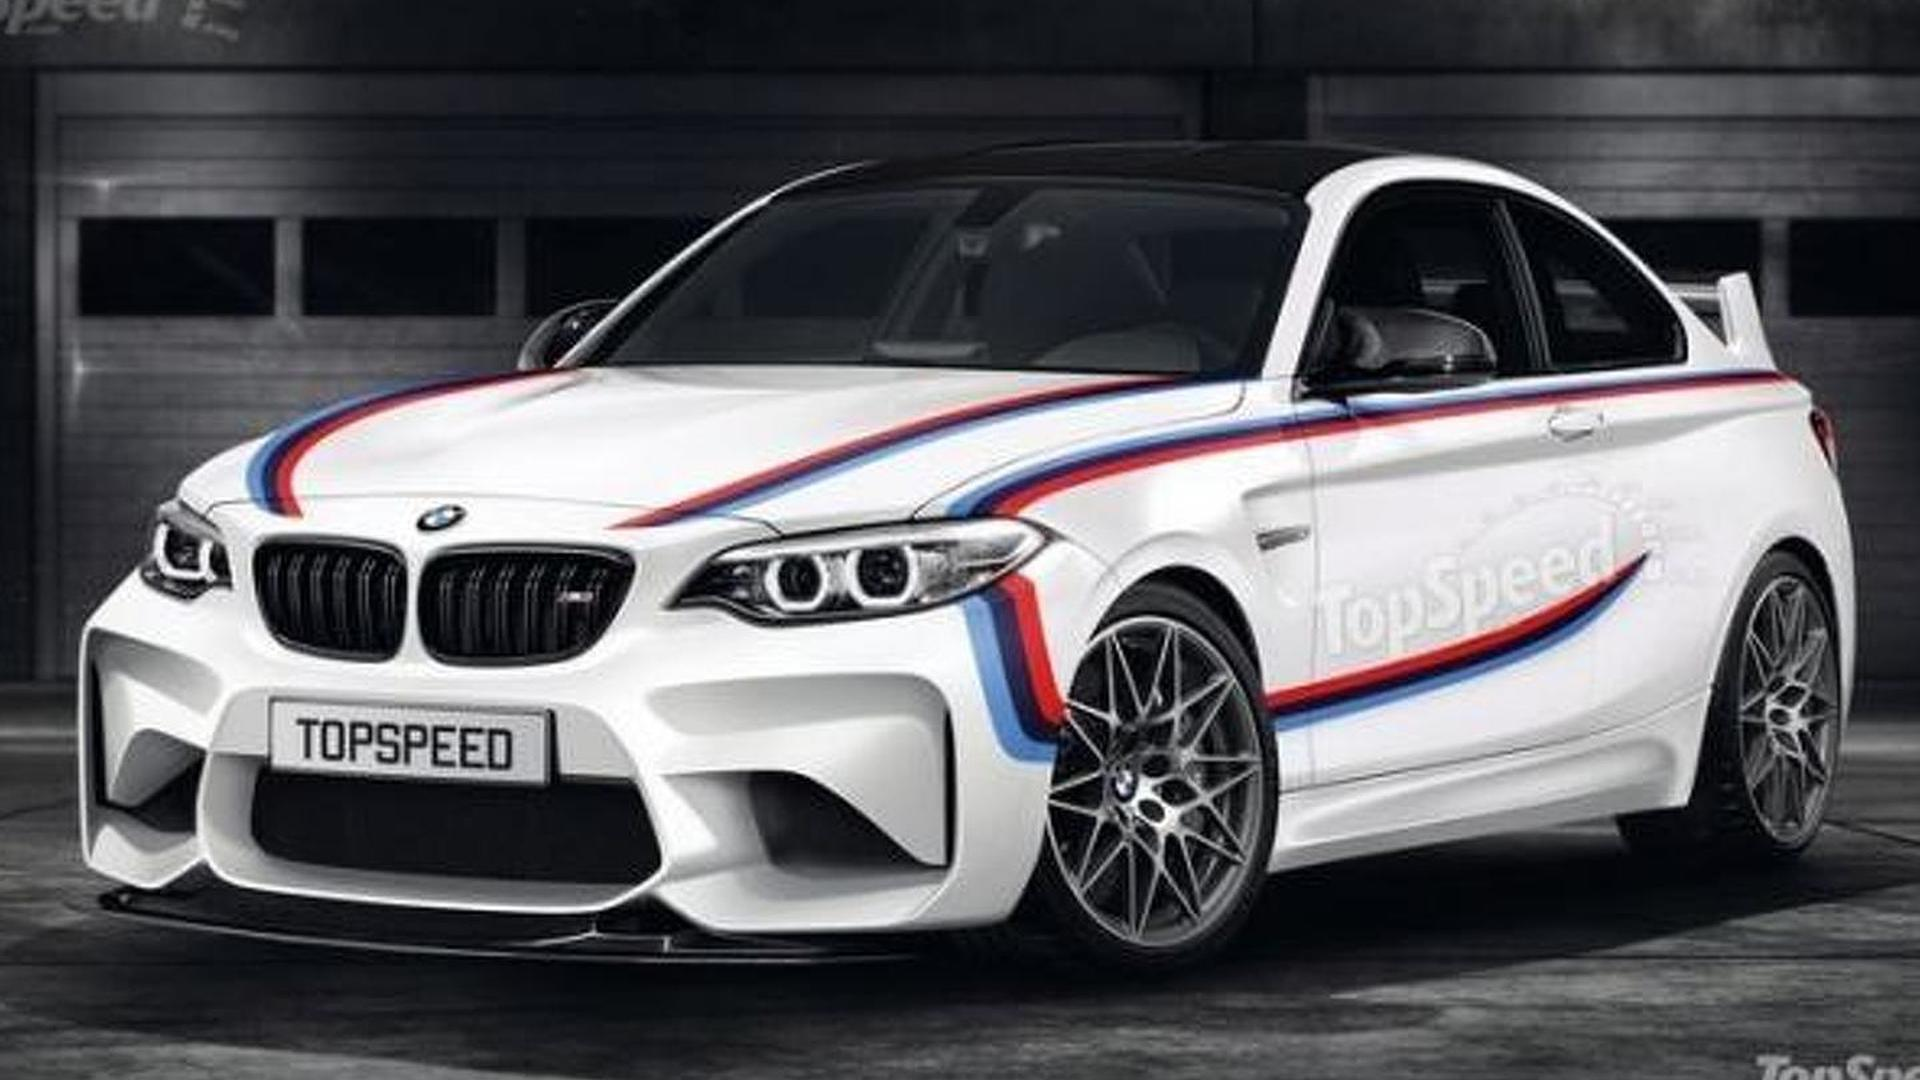 Rumored 2016 BMW M2 CSL speculatively rendered